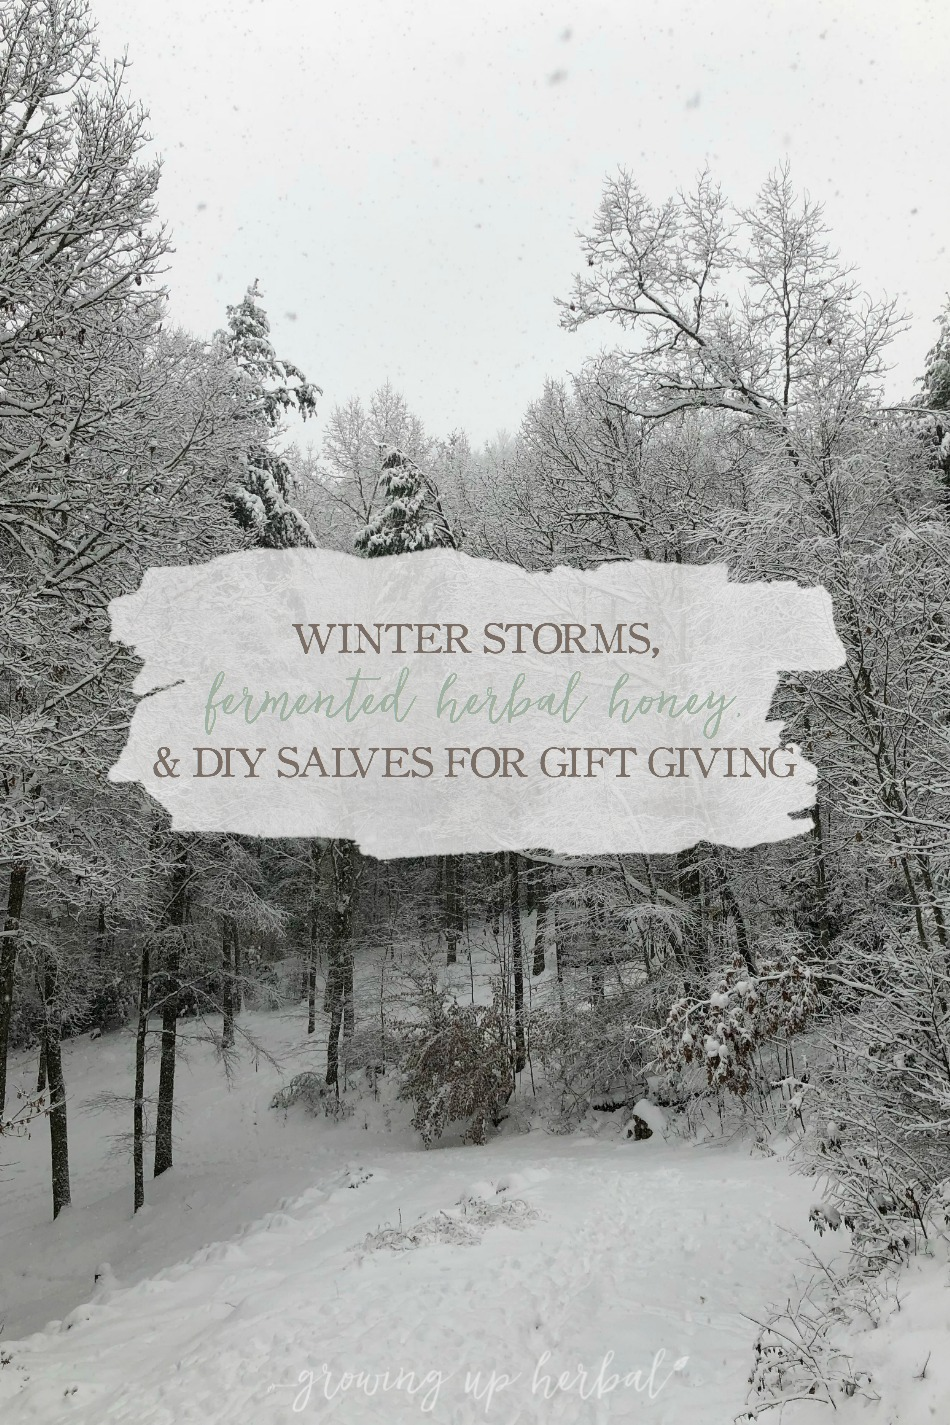 Winter Storms, Fermented Herbal Honey Recipe, and DIY Salves for Gift Giving